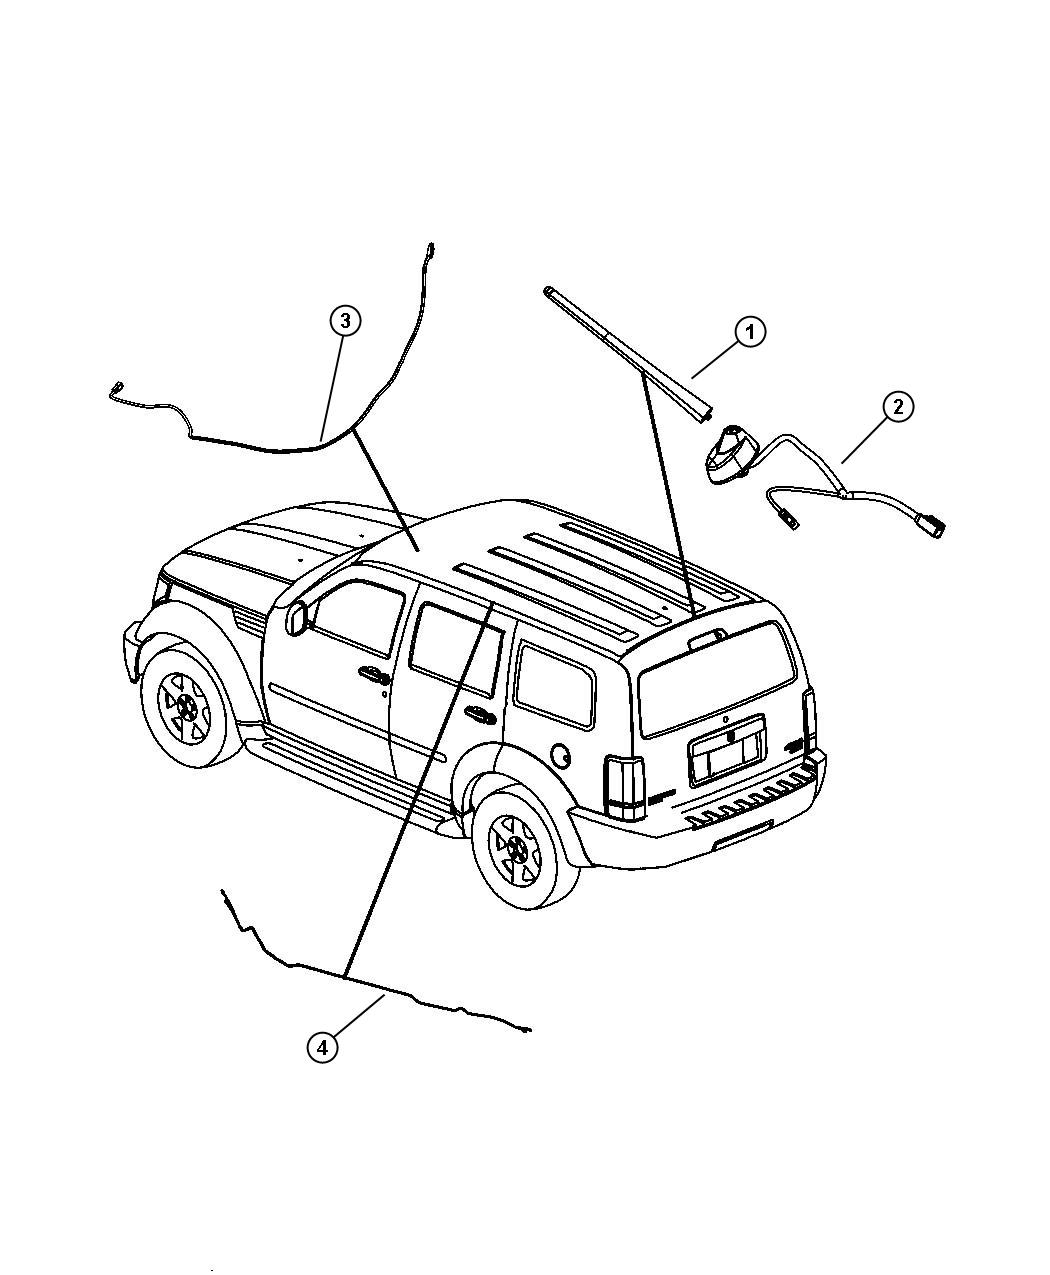 Jeep Grand Cherokee Antenna Base Cable And Bracket